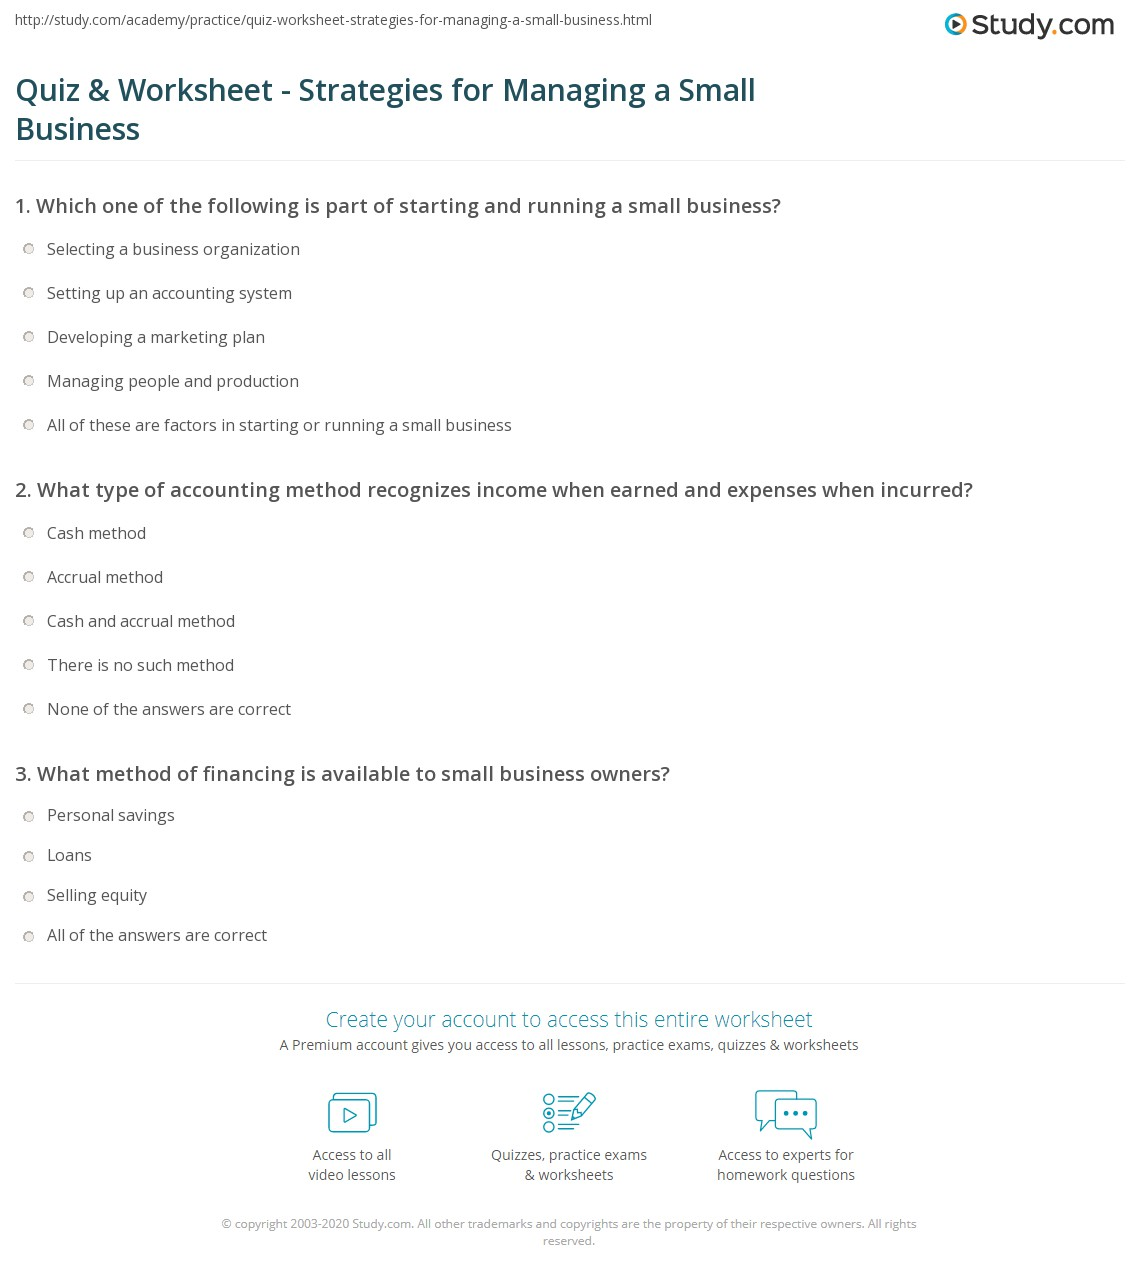 quiz worksheet strategies for managing a small business study com